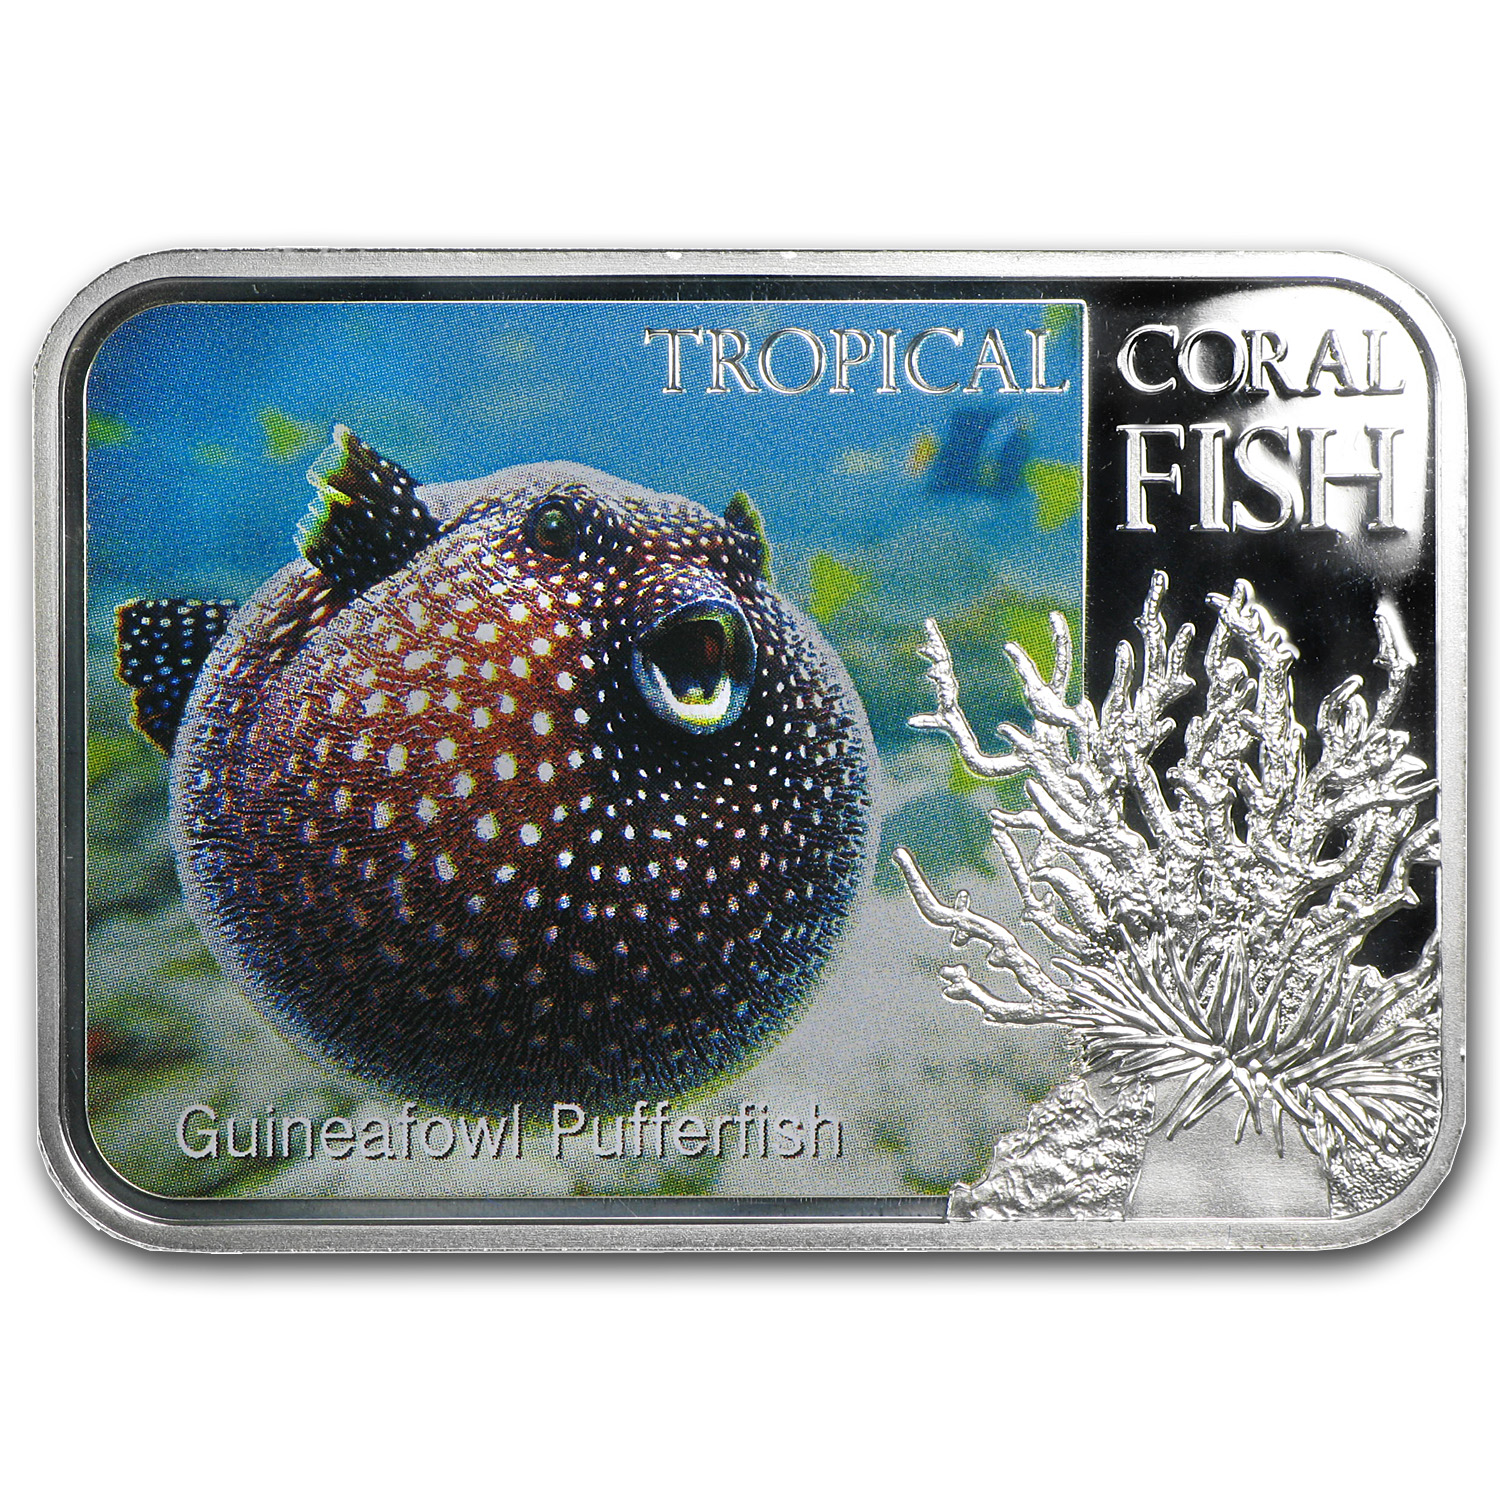 2013 1 oz Silver Niue Tropical Coral Fish - Guineafowl Pufferfish